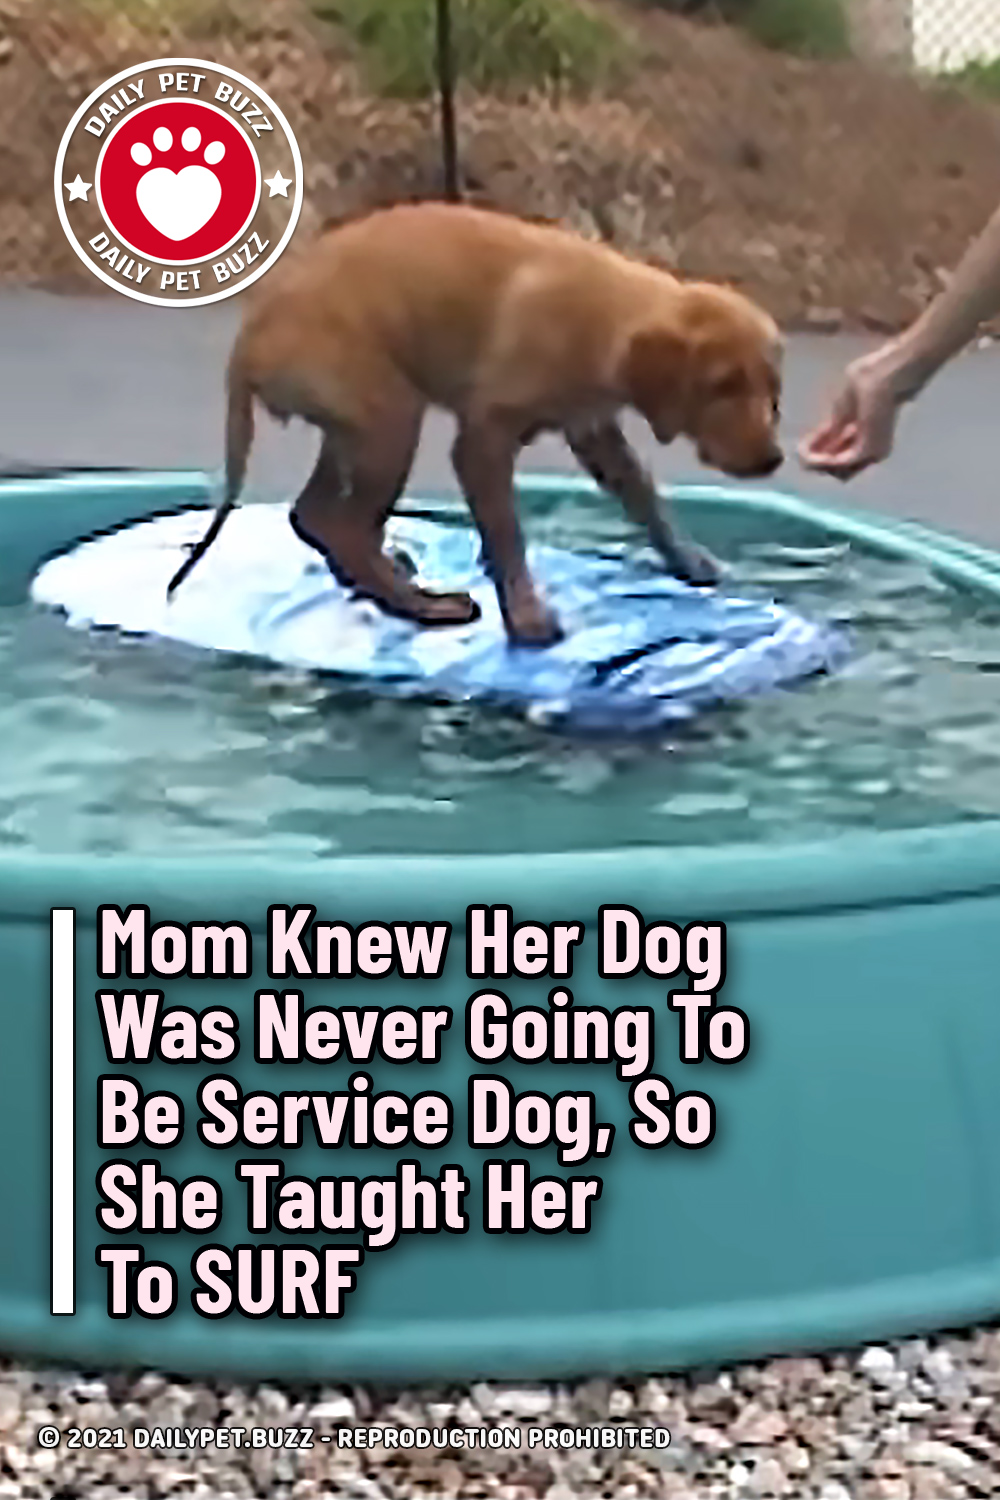 Mom Knew Her Dog Was Never Going To Be Service Dog, So She Taught Her To SURF